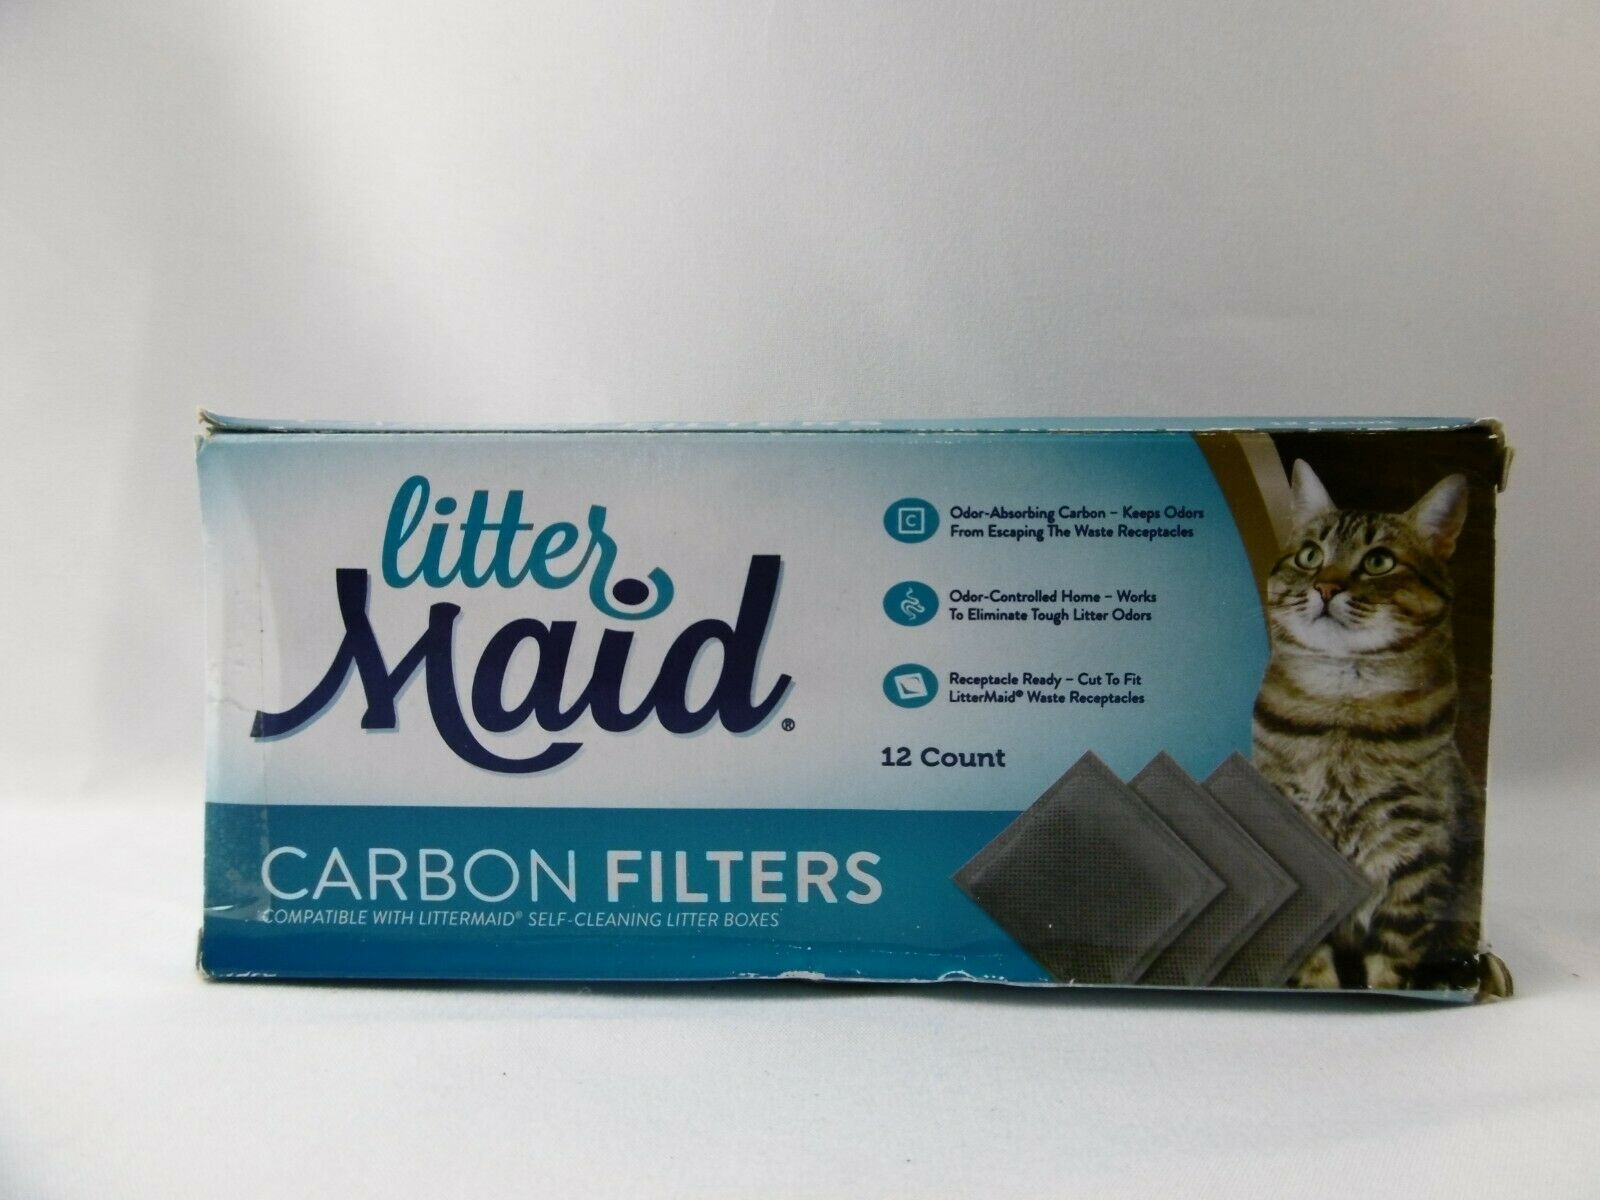 Primary image for LitterMaid Odor Absorbing Litter Box Carbon Filters 12 Pack